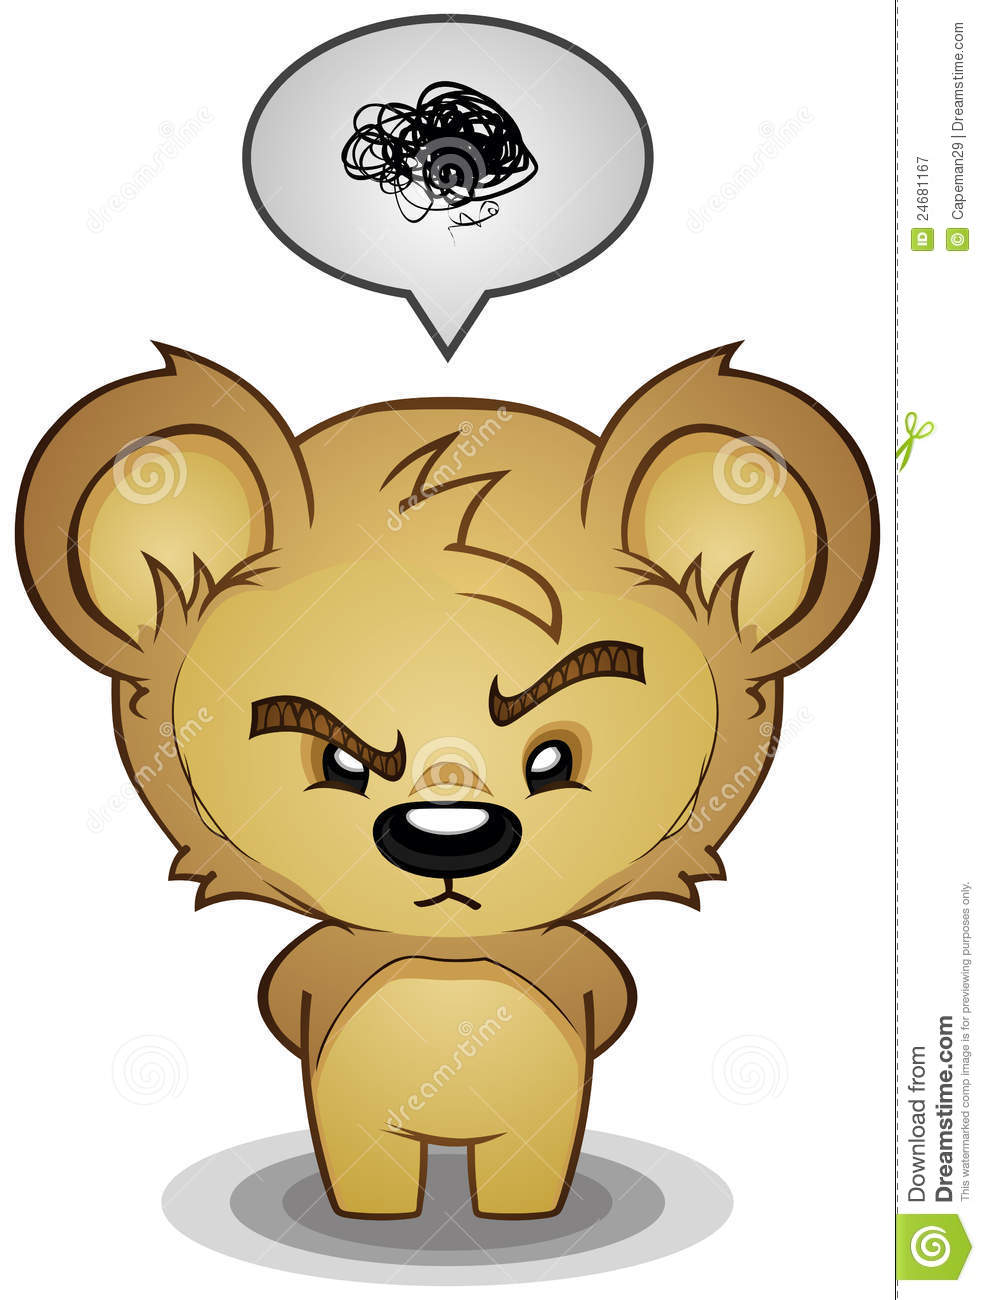 Stern Frustrated Teddy Bear Stock Vector Image 24681167